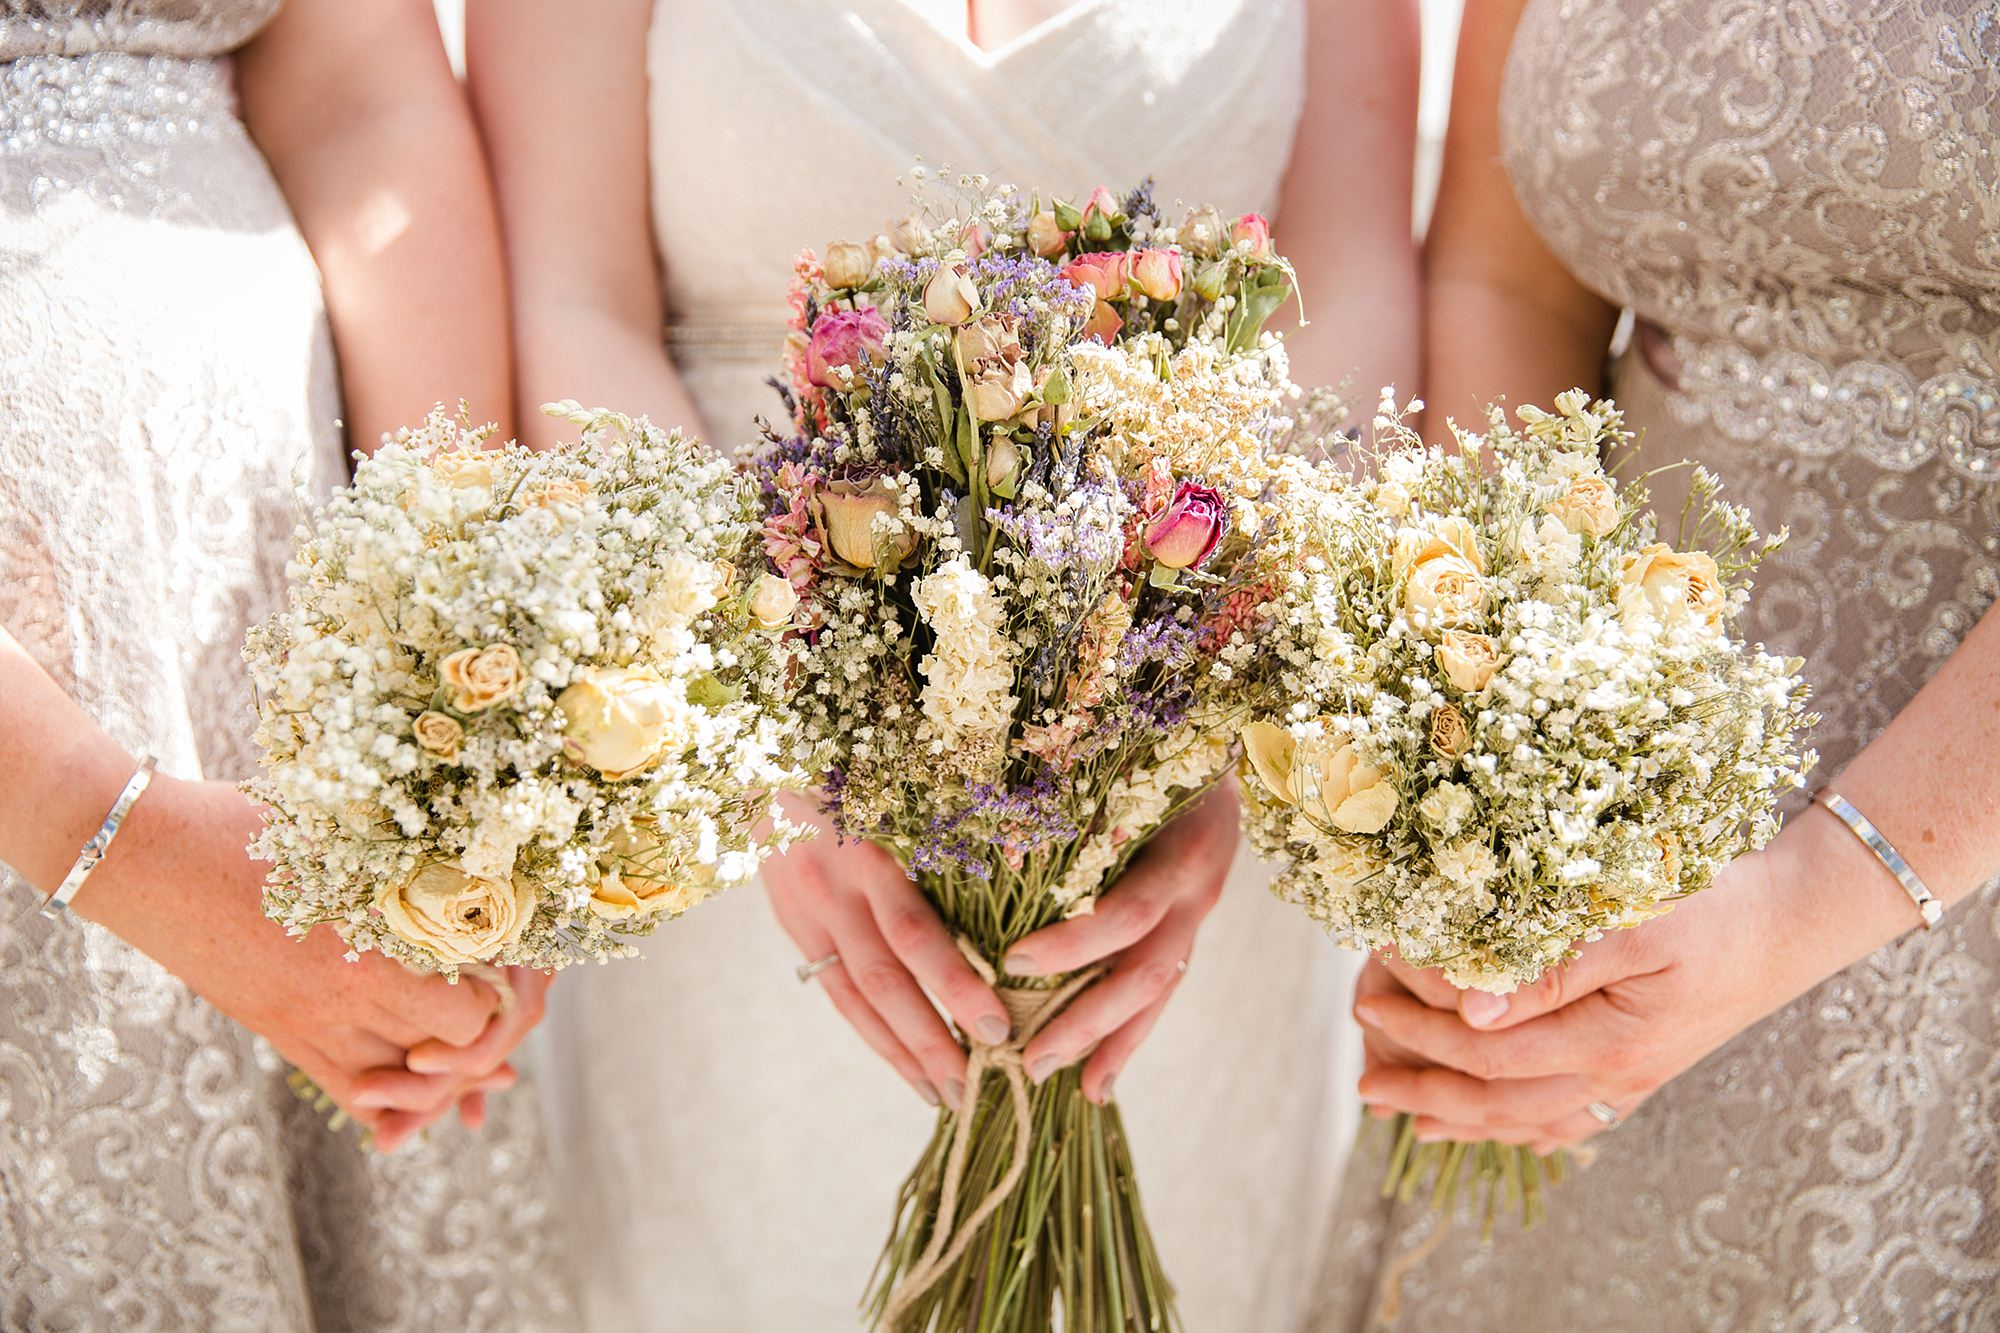 oyster shed wedding close up of bride and bridesmaids dried bouquets